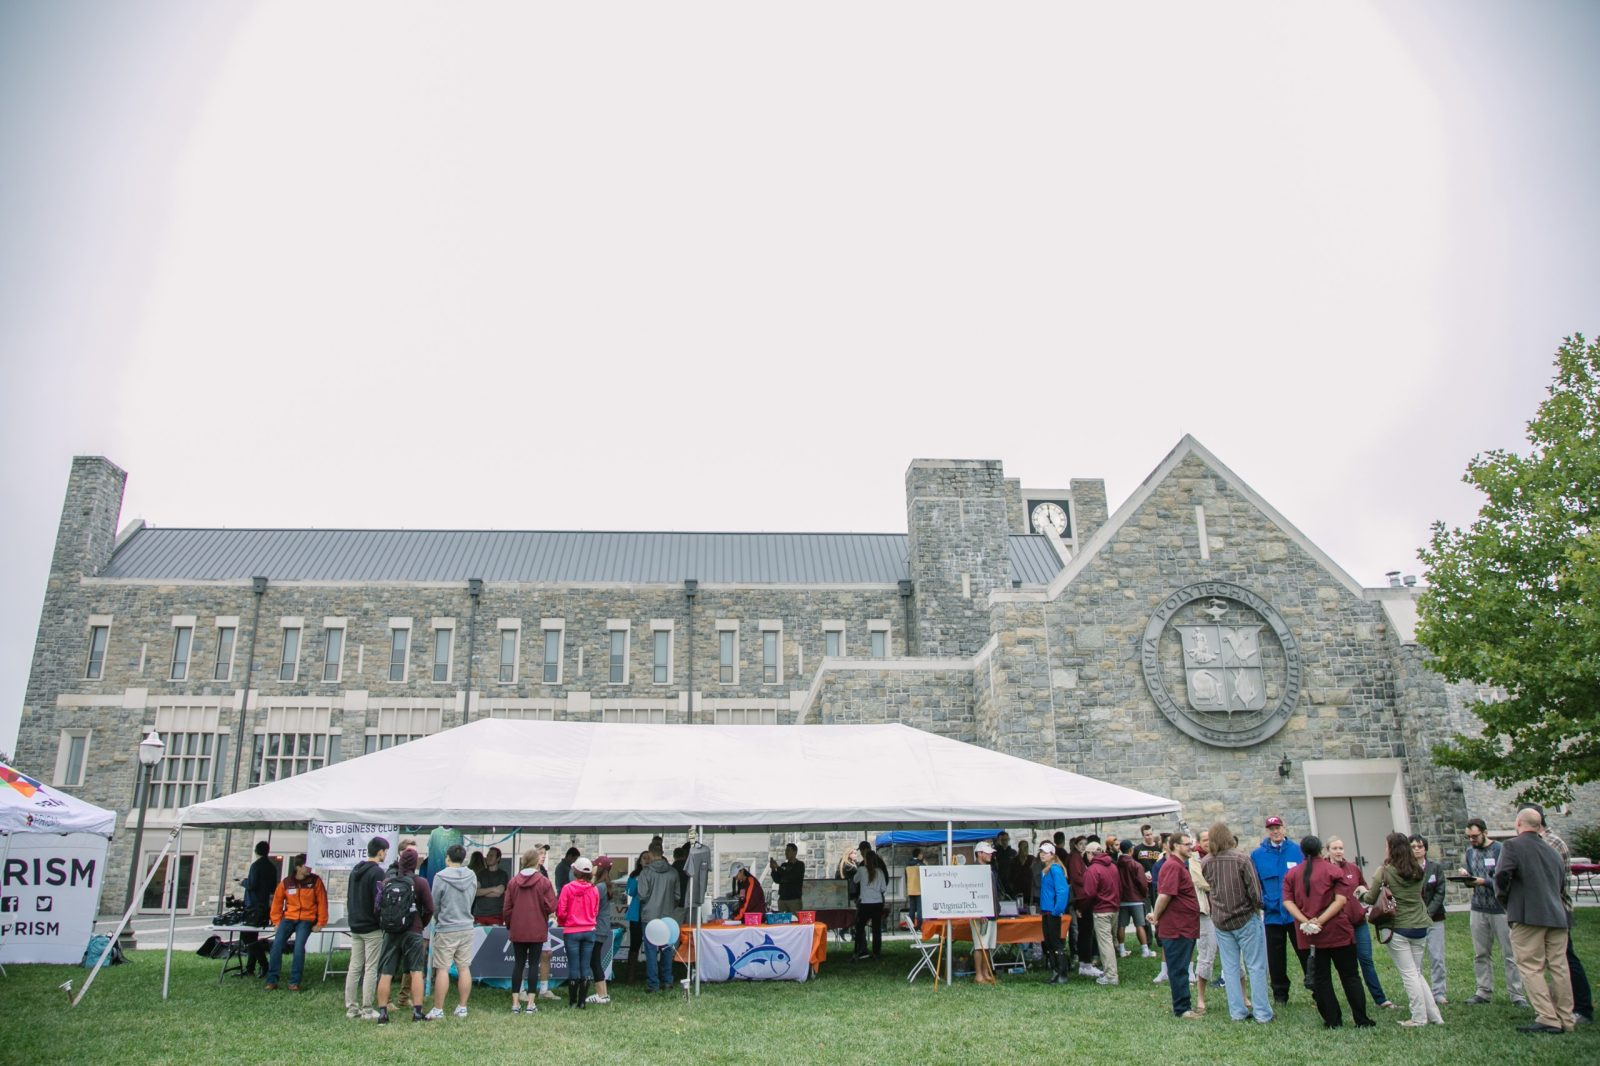 The Pamplin College of Business kicked off the Fall semester with its annual picnic for students, faculty and staff on Friday, September 1, 2017.